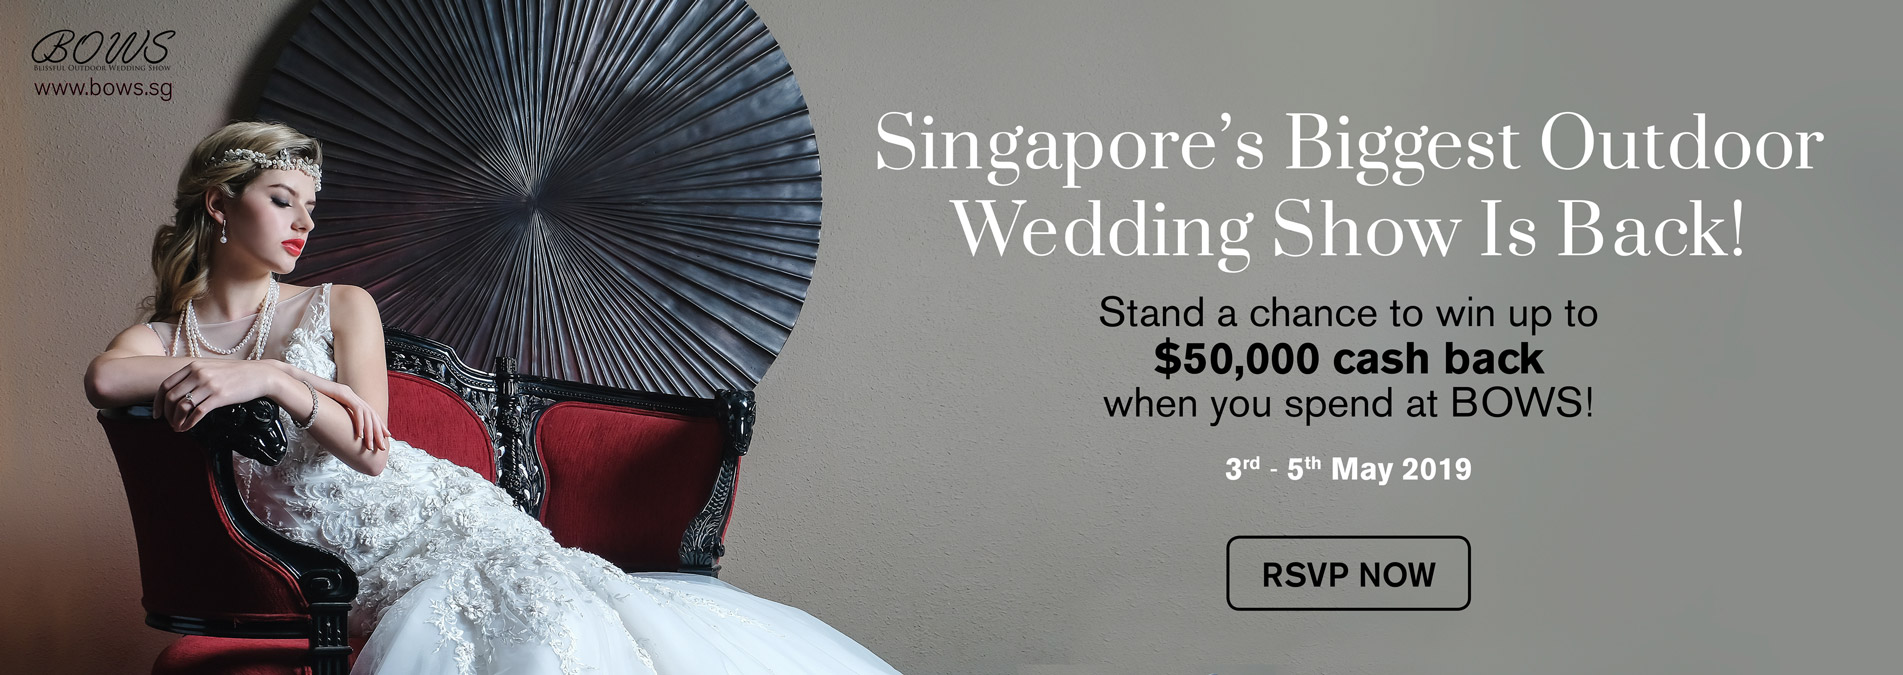 Singapore biggest outdoor wedding show | BOWS